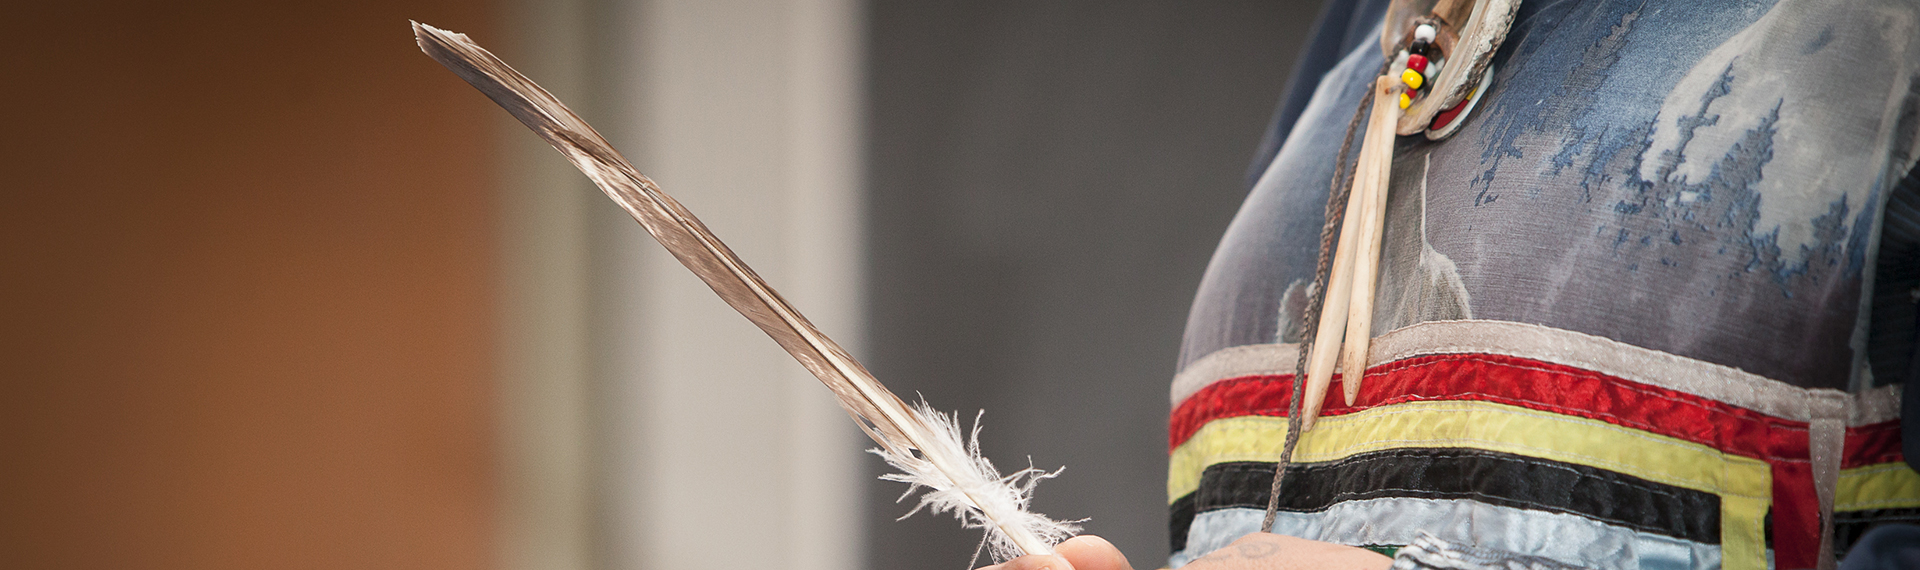 indigenous person holding a feather